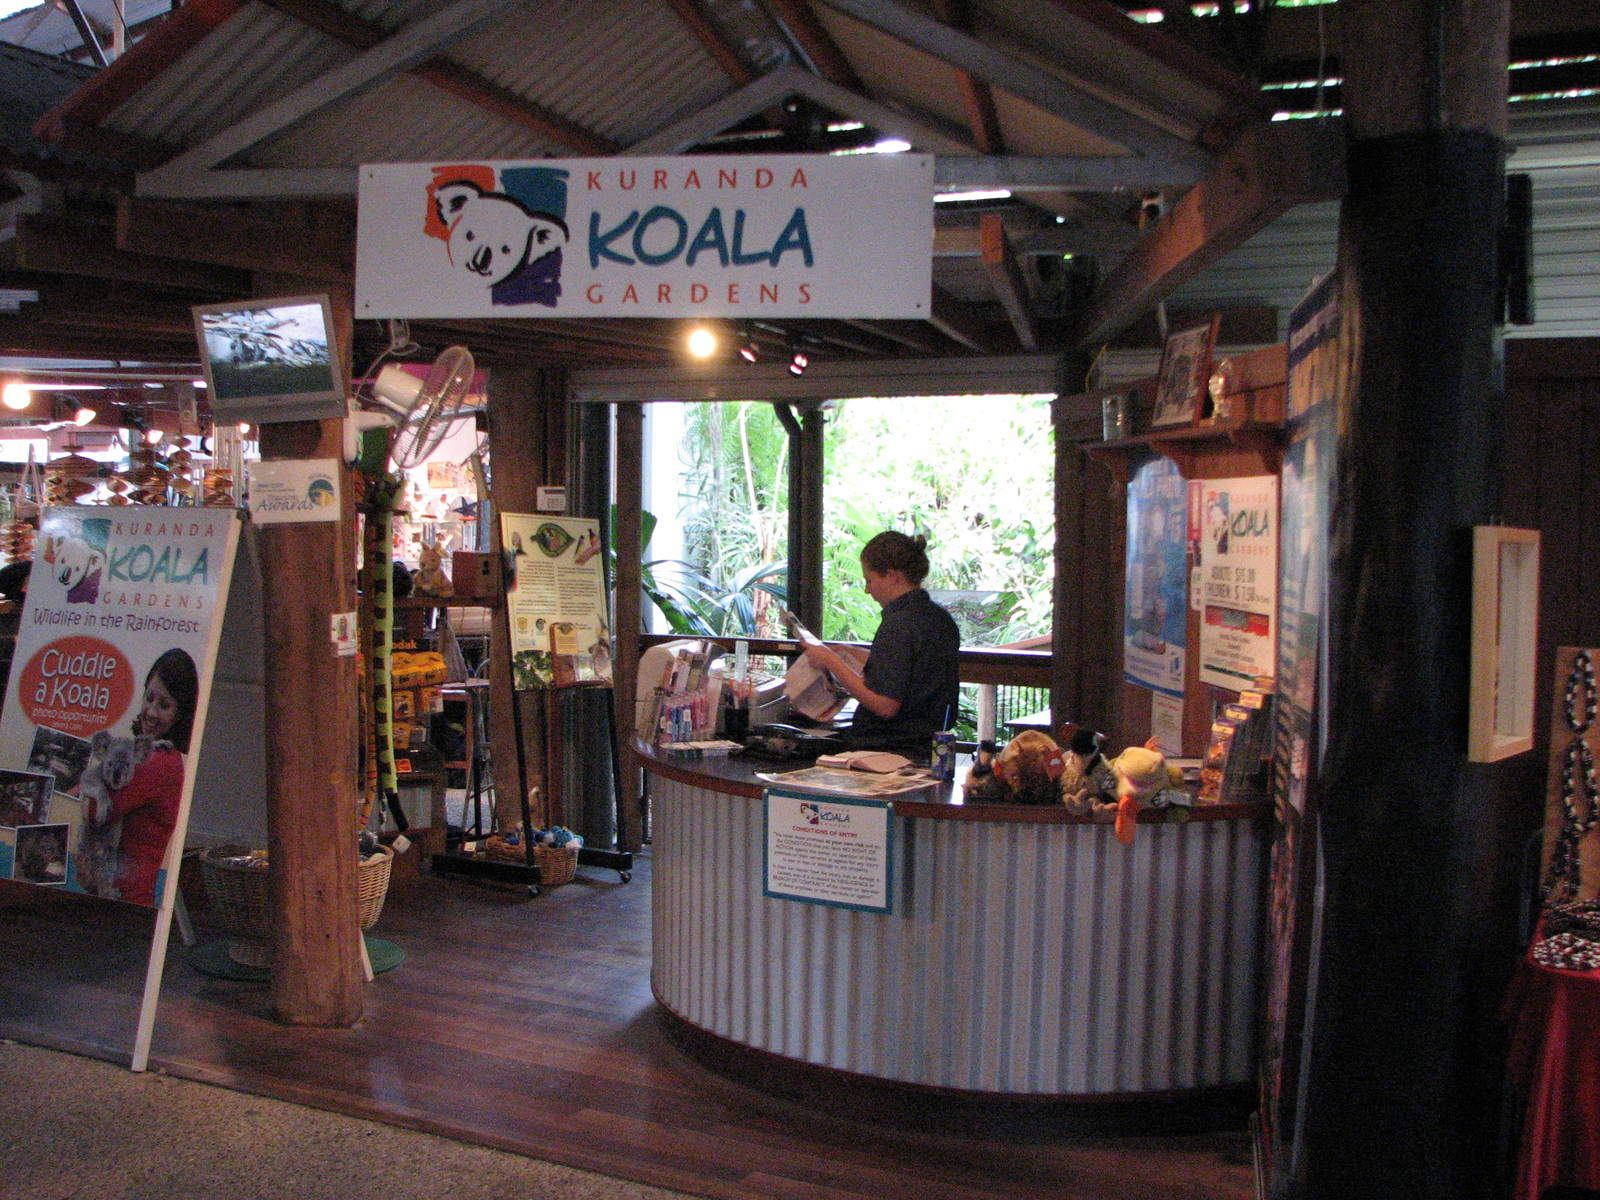 Kuranda Koala Gardens Kuranda, Kuranda Koala Gardens - Entrance to Kuranda Koala Gardens through ...